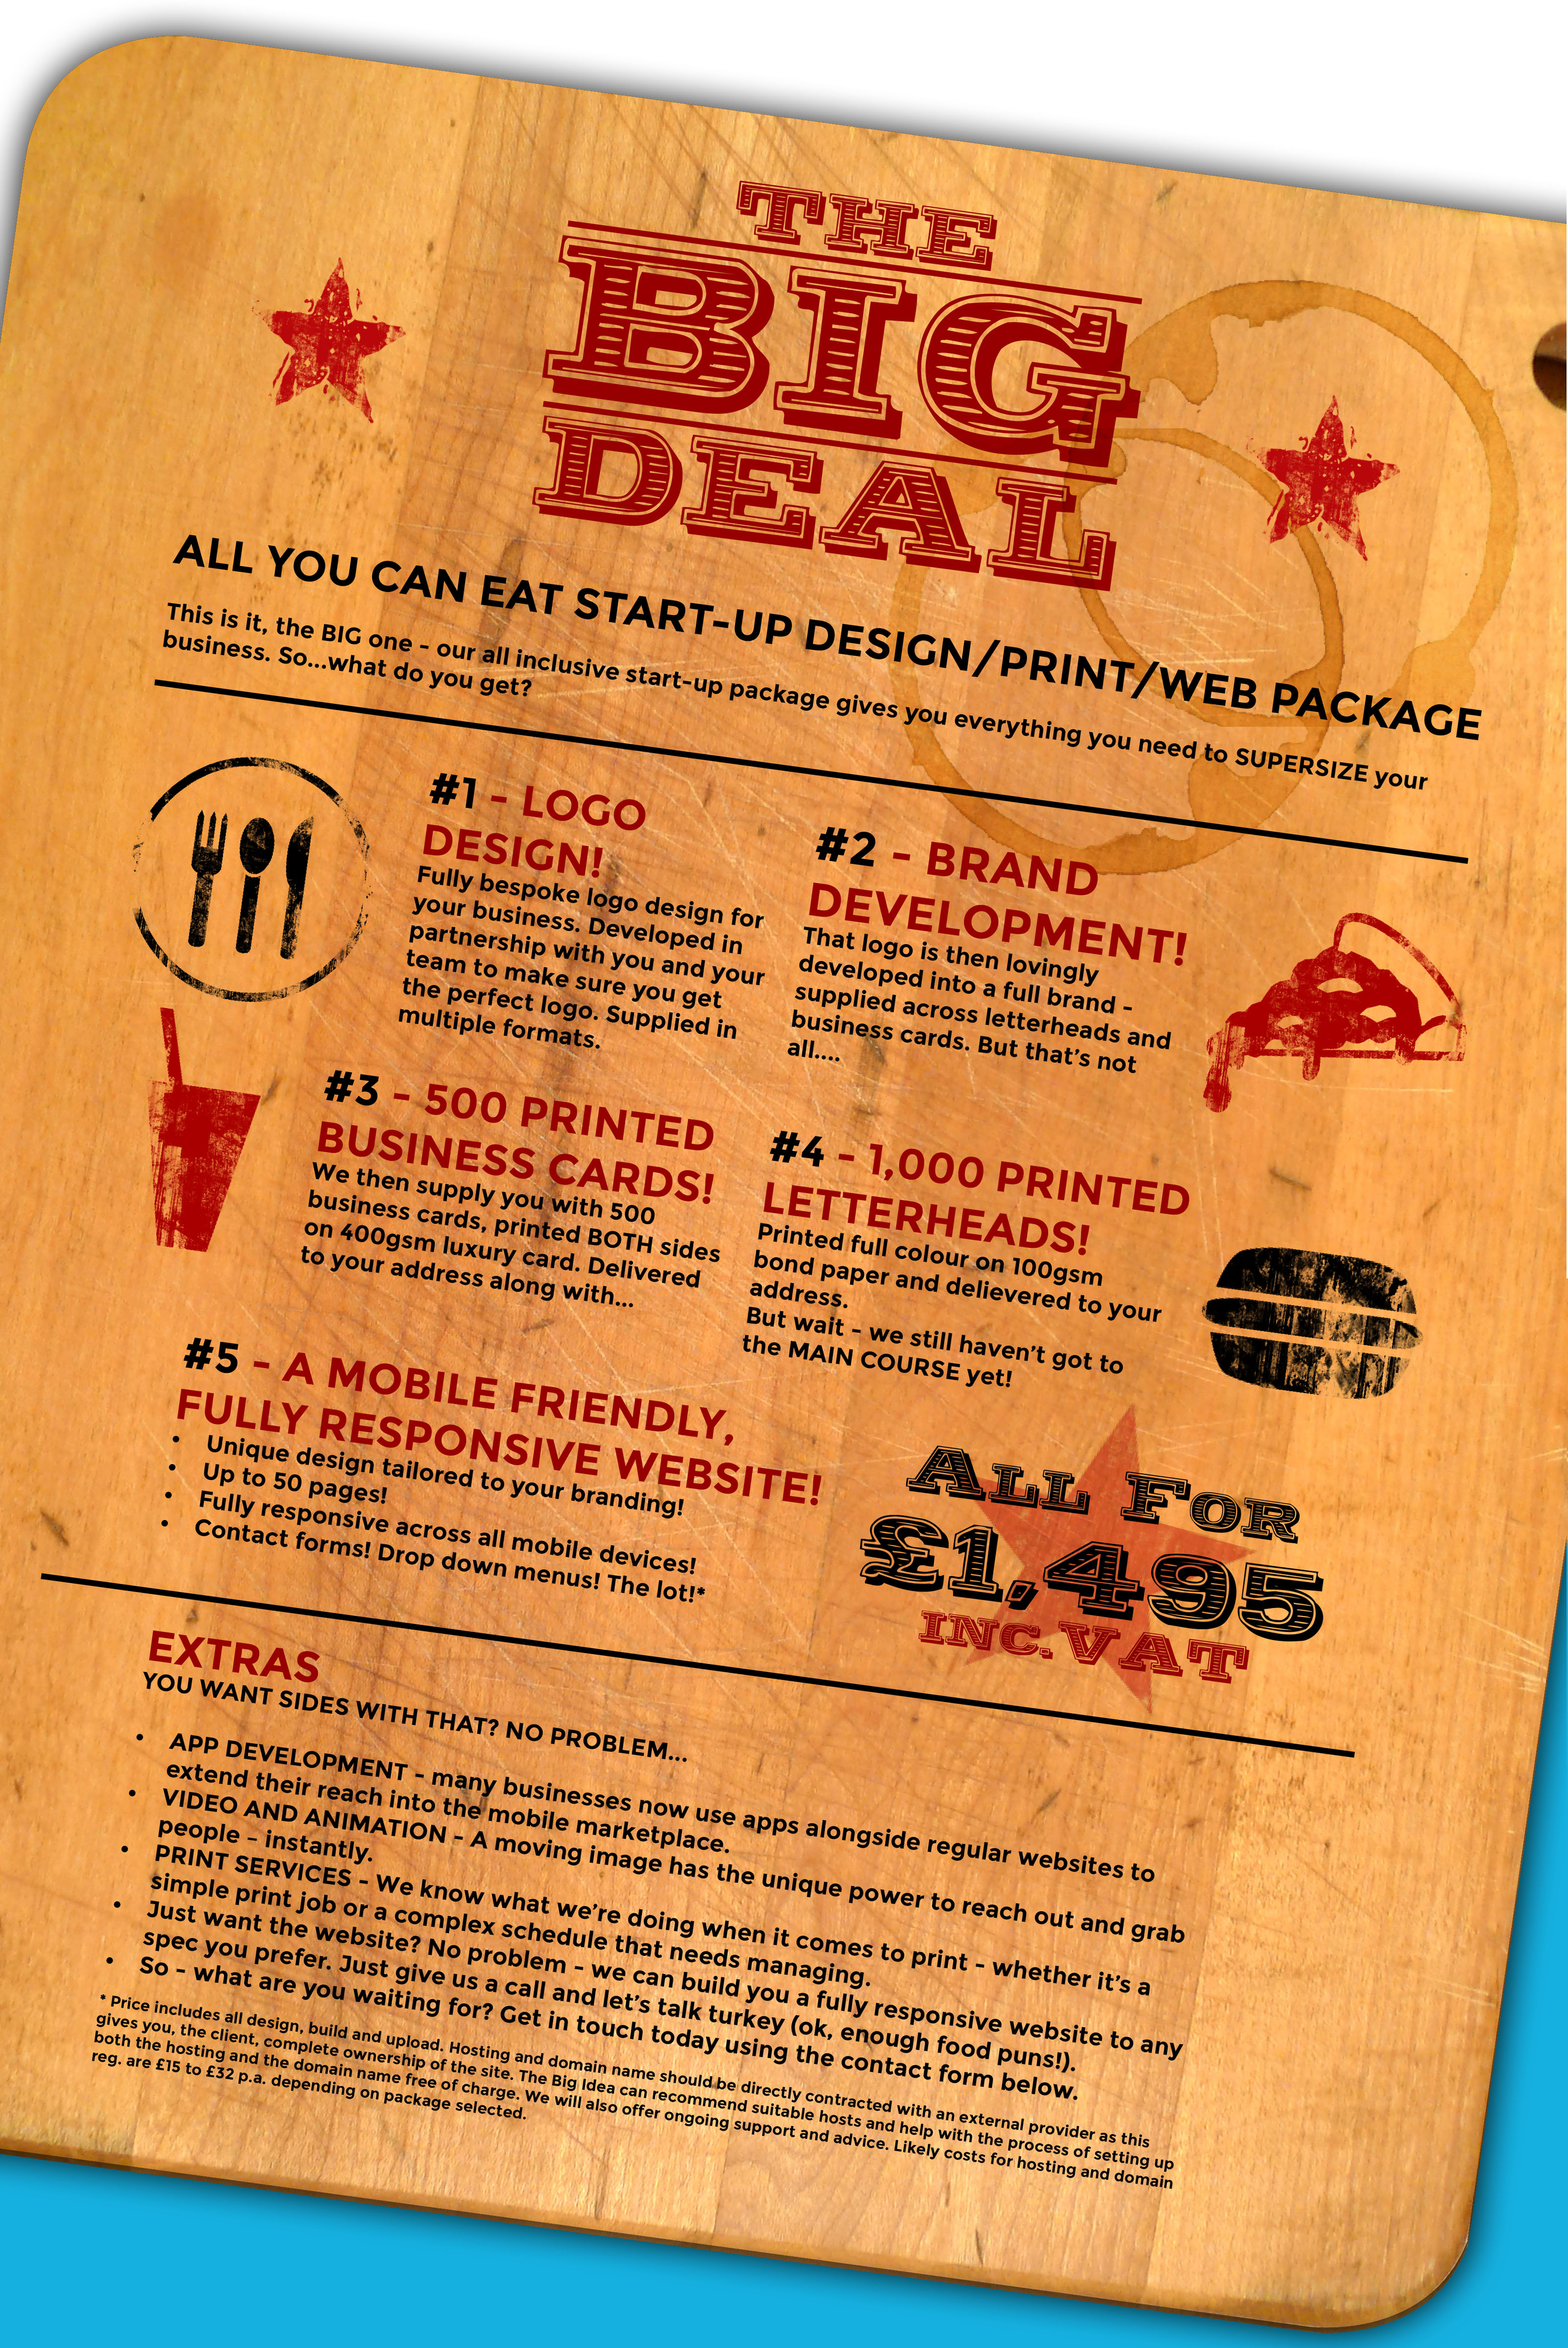 Our Big Offer deal